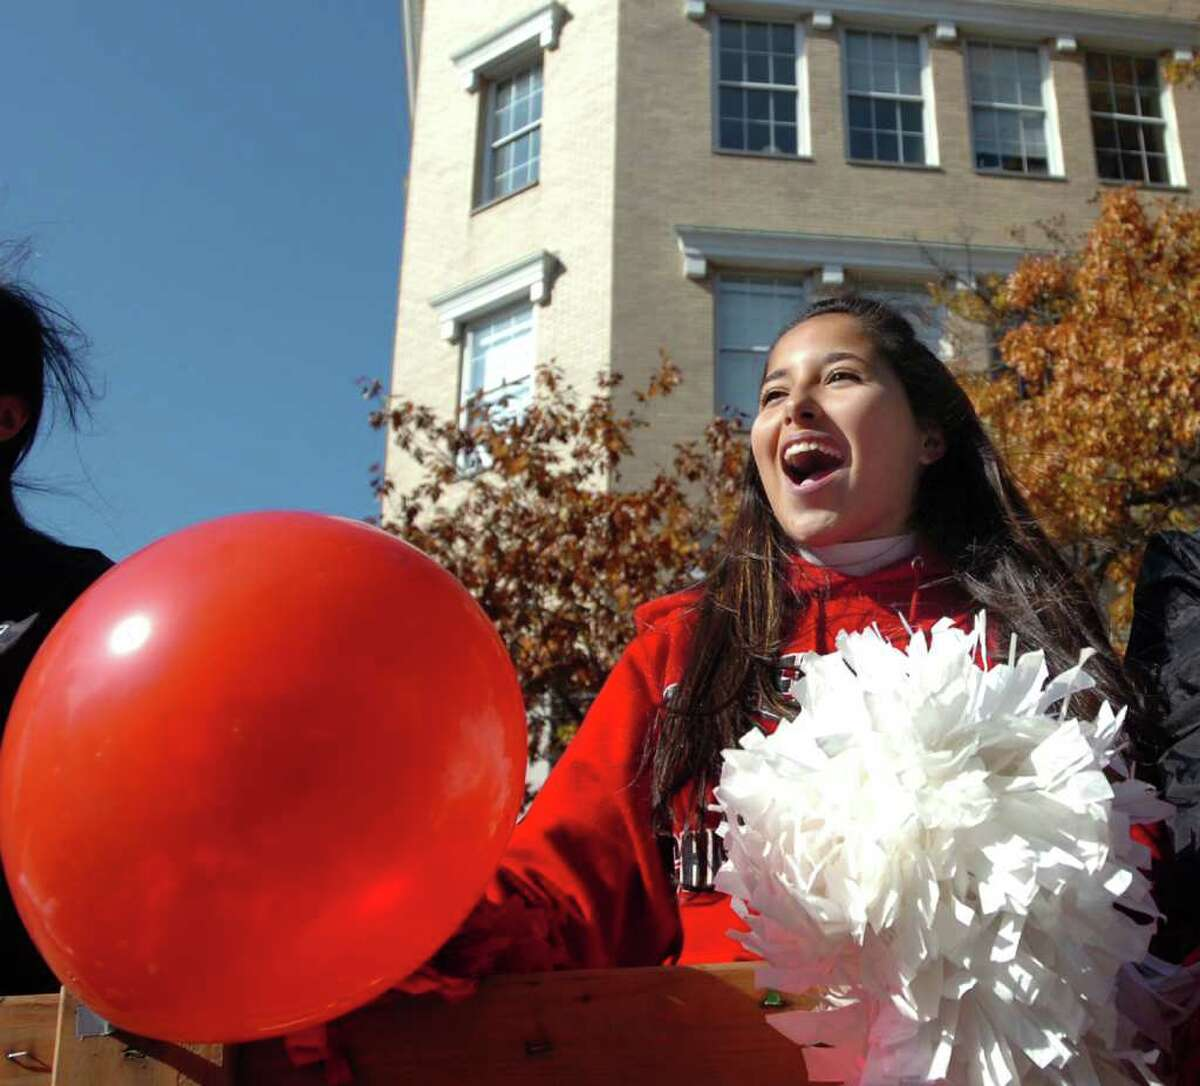 Greenwich High School junior varsity cheerleader Samantha Garcia leads the cheering from the GHS junior varsity float during the Greenwich High School homecoming parade on Greenwich Avenue, Saturday morning, Oct. 23, 2010.